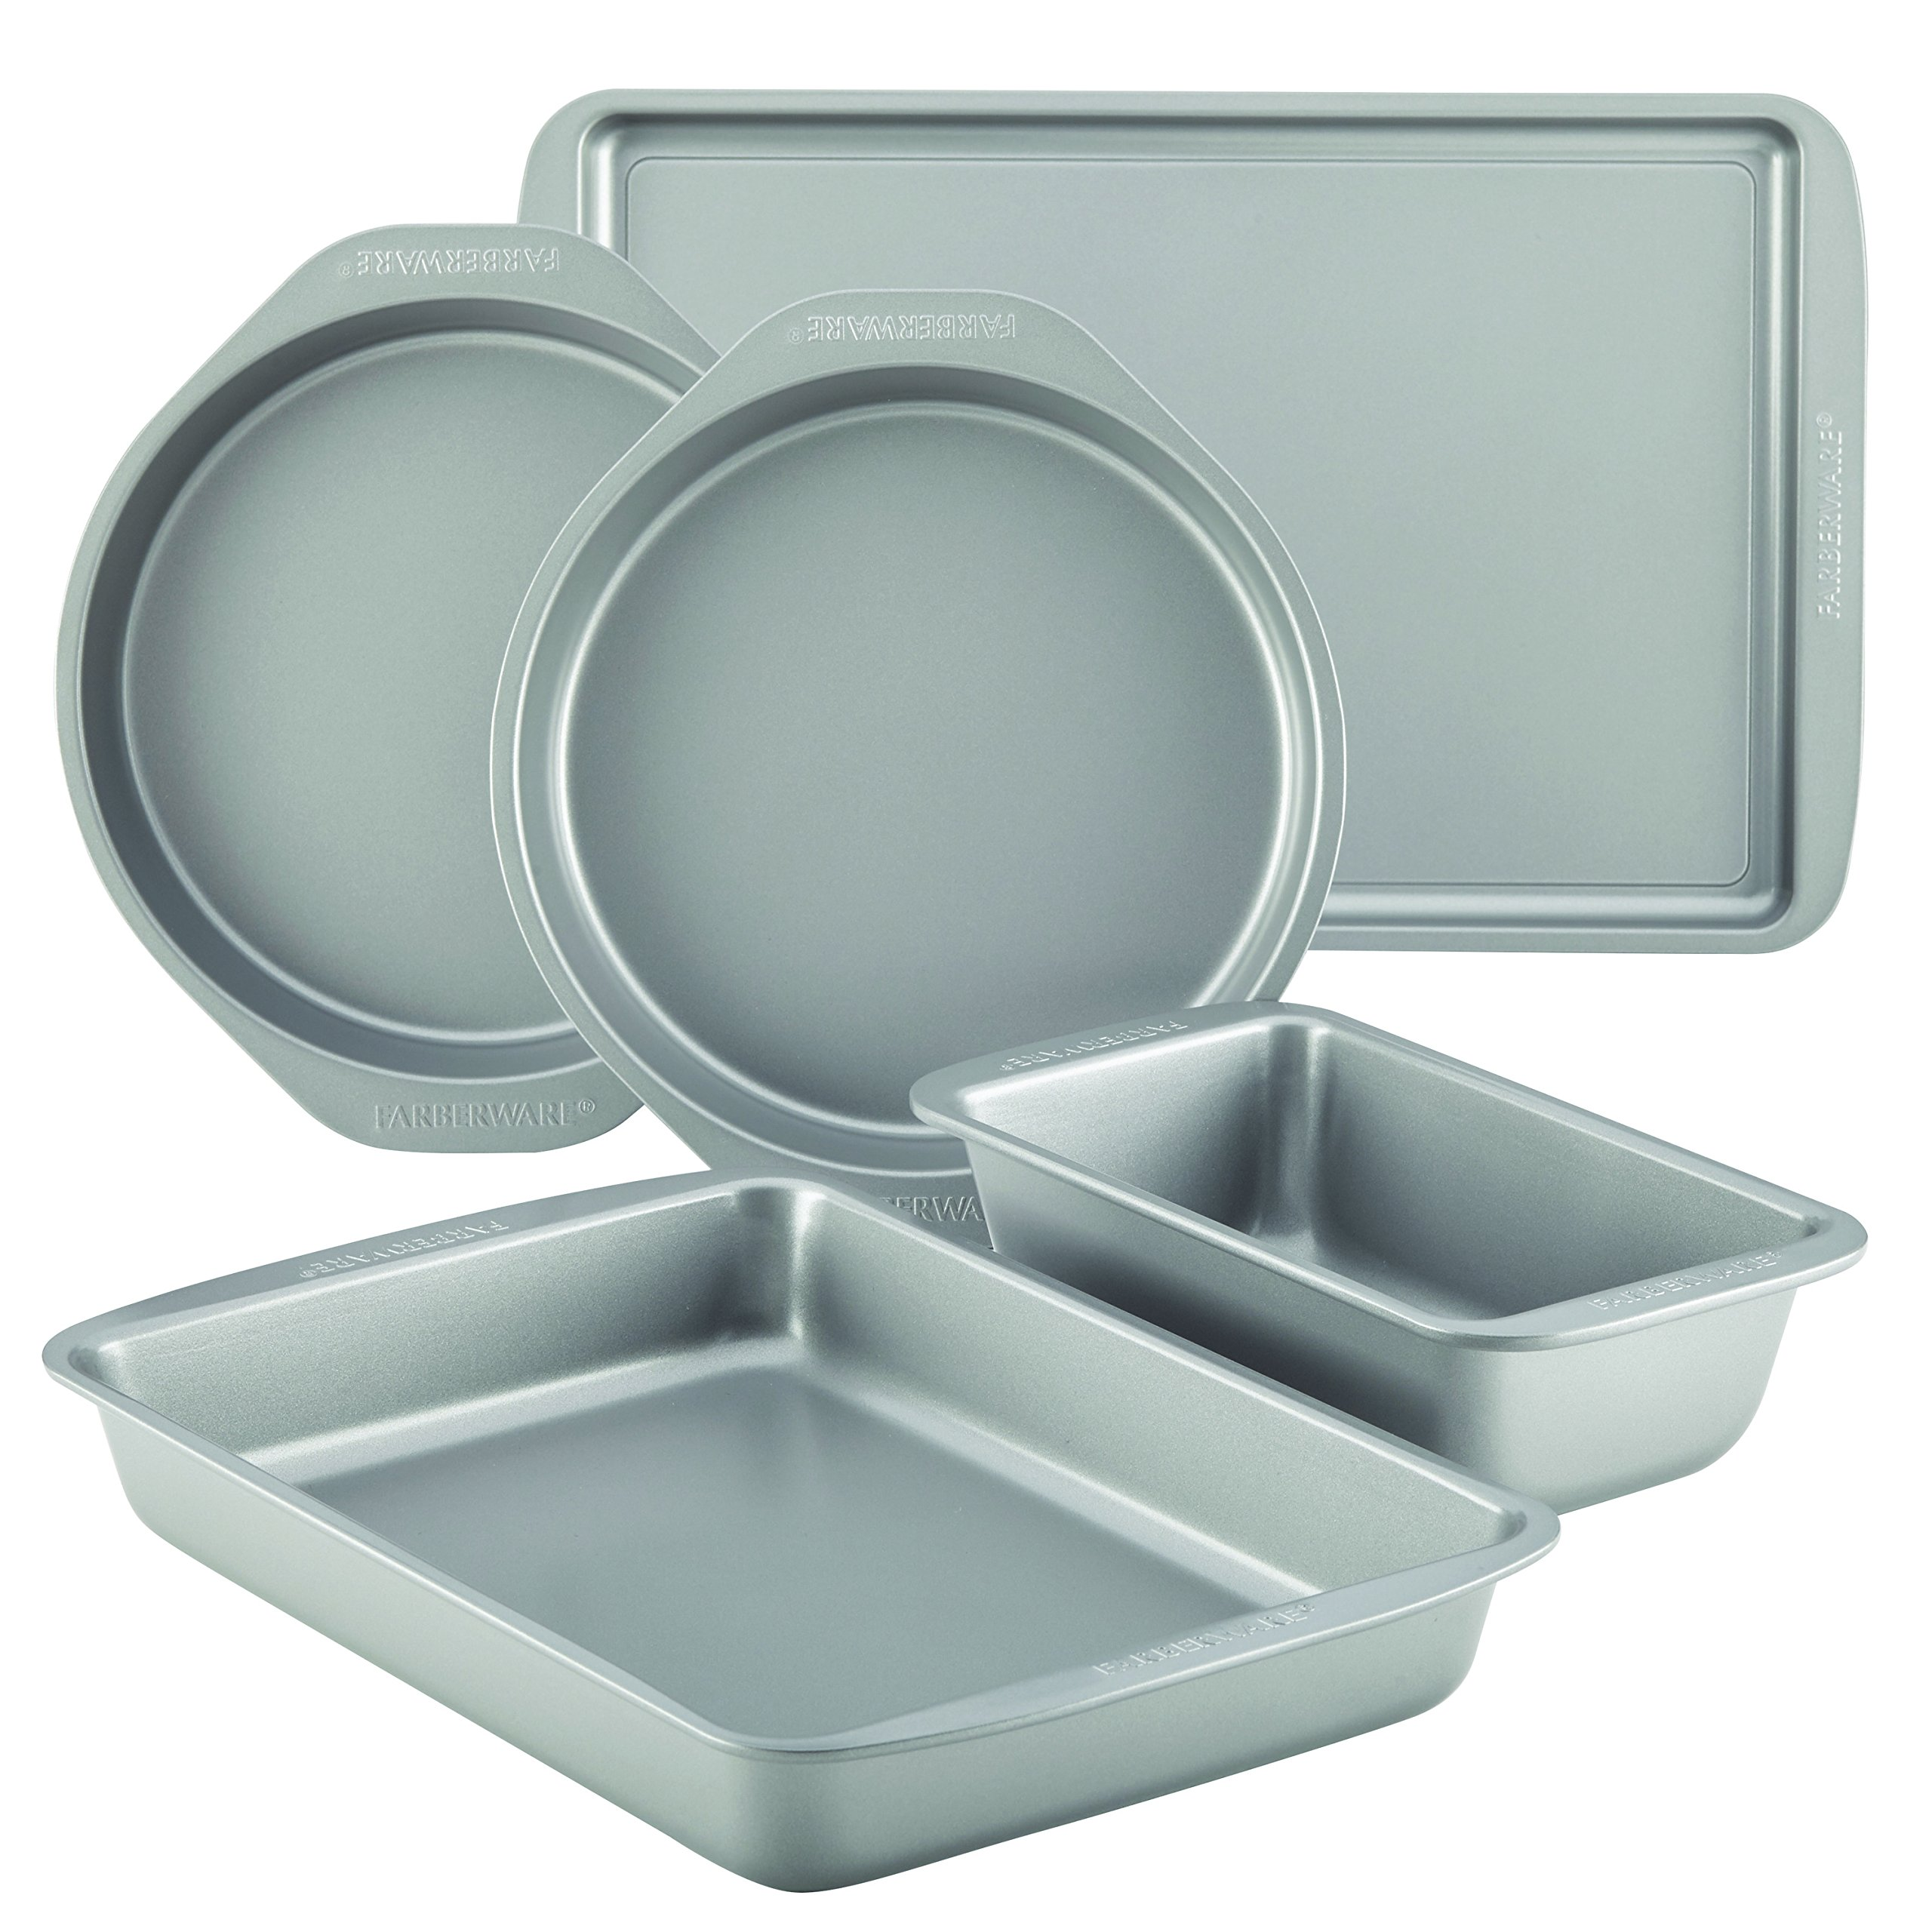 Other Bakeware Farberware Nonstick Bakeware 5 Piece